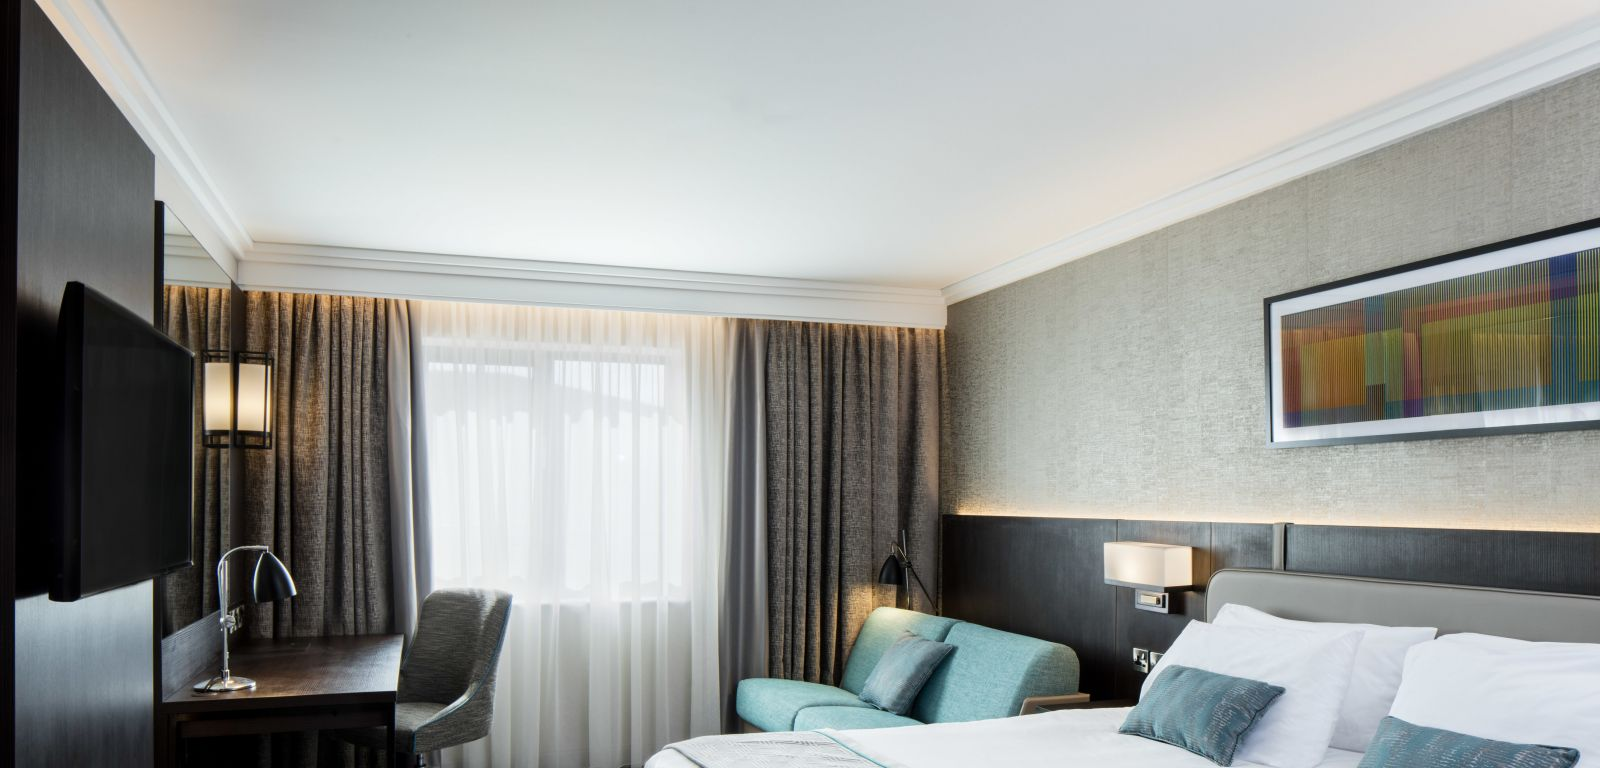 New luxurious sofabed bedroom at Crowne Plaza Belfast